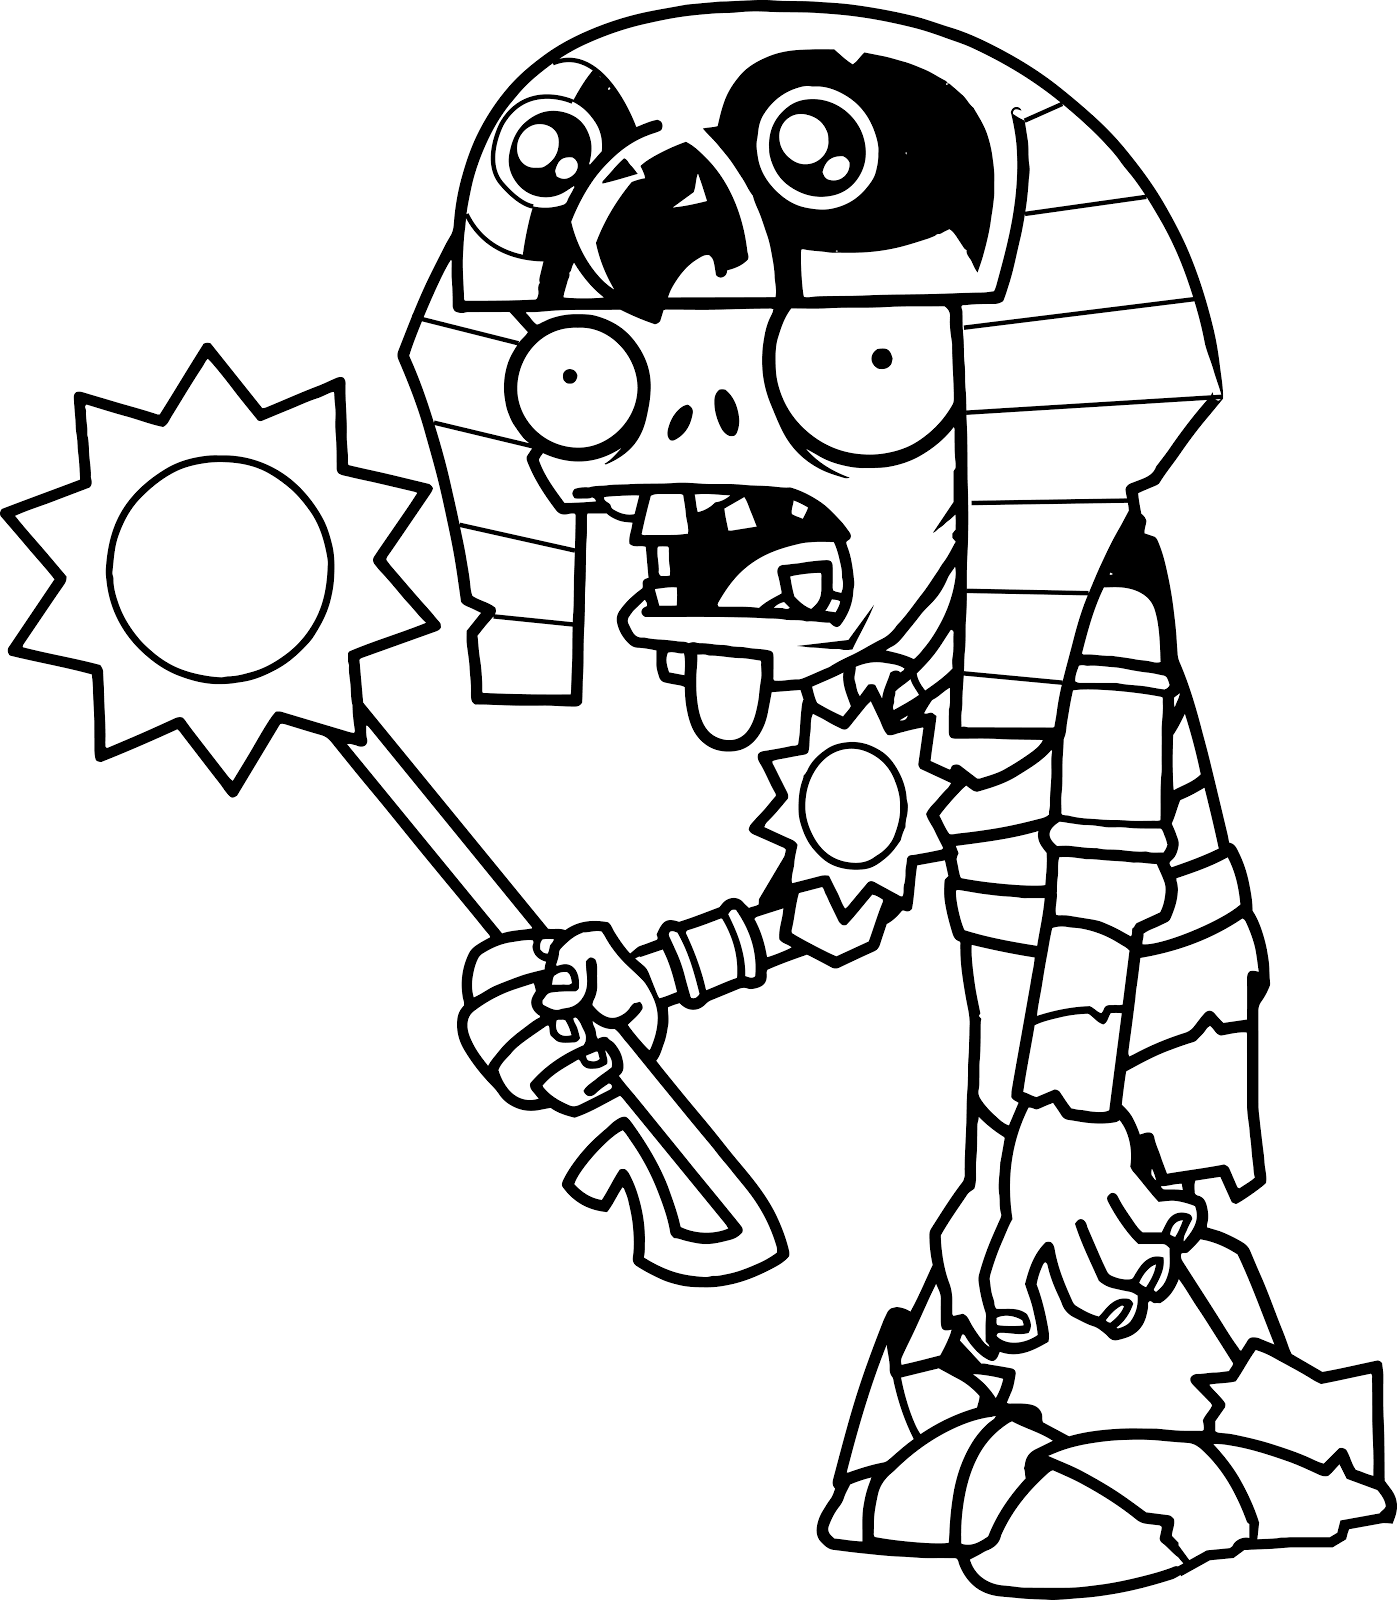 plants vs zombies 2 colouring pages páginas para colorear originales original coloring pages colouring pages zombies 2 plants vs